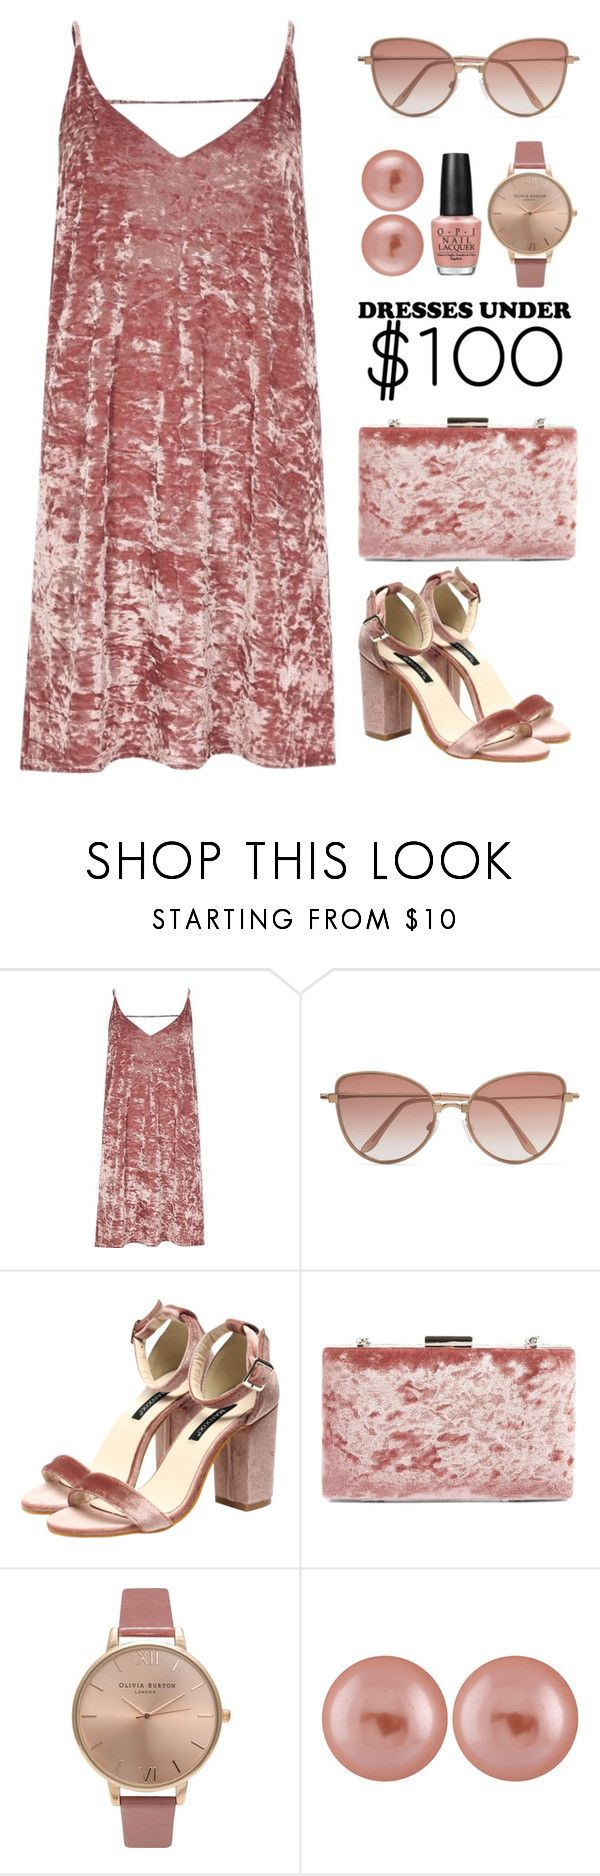 """""""Under $100: Summer Dresses"""" by rasa-j ❤ liked on Polyvore featuring River Island, Cutler and Gross, Glint, Olivia Burton, Splendid Pearls, OPI, under100 and womensFashion"""